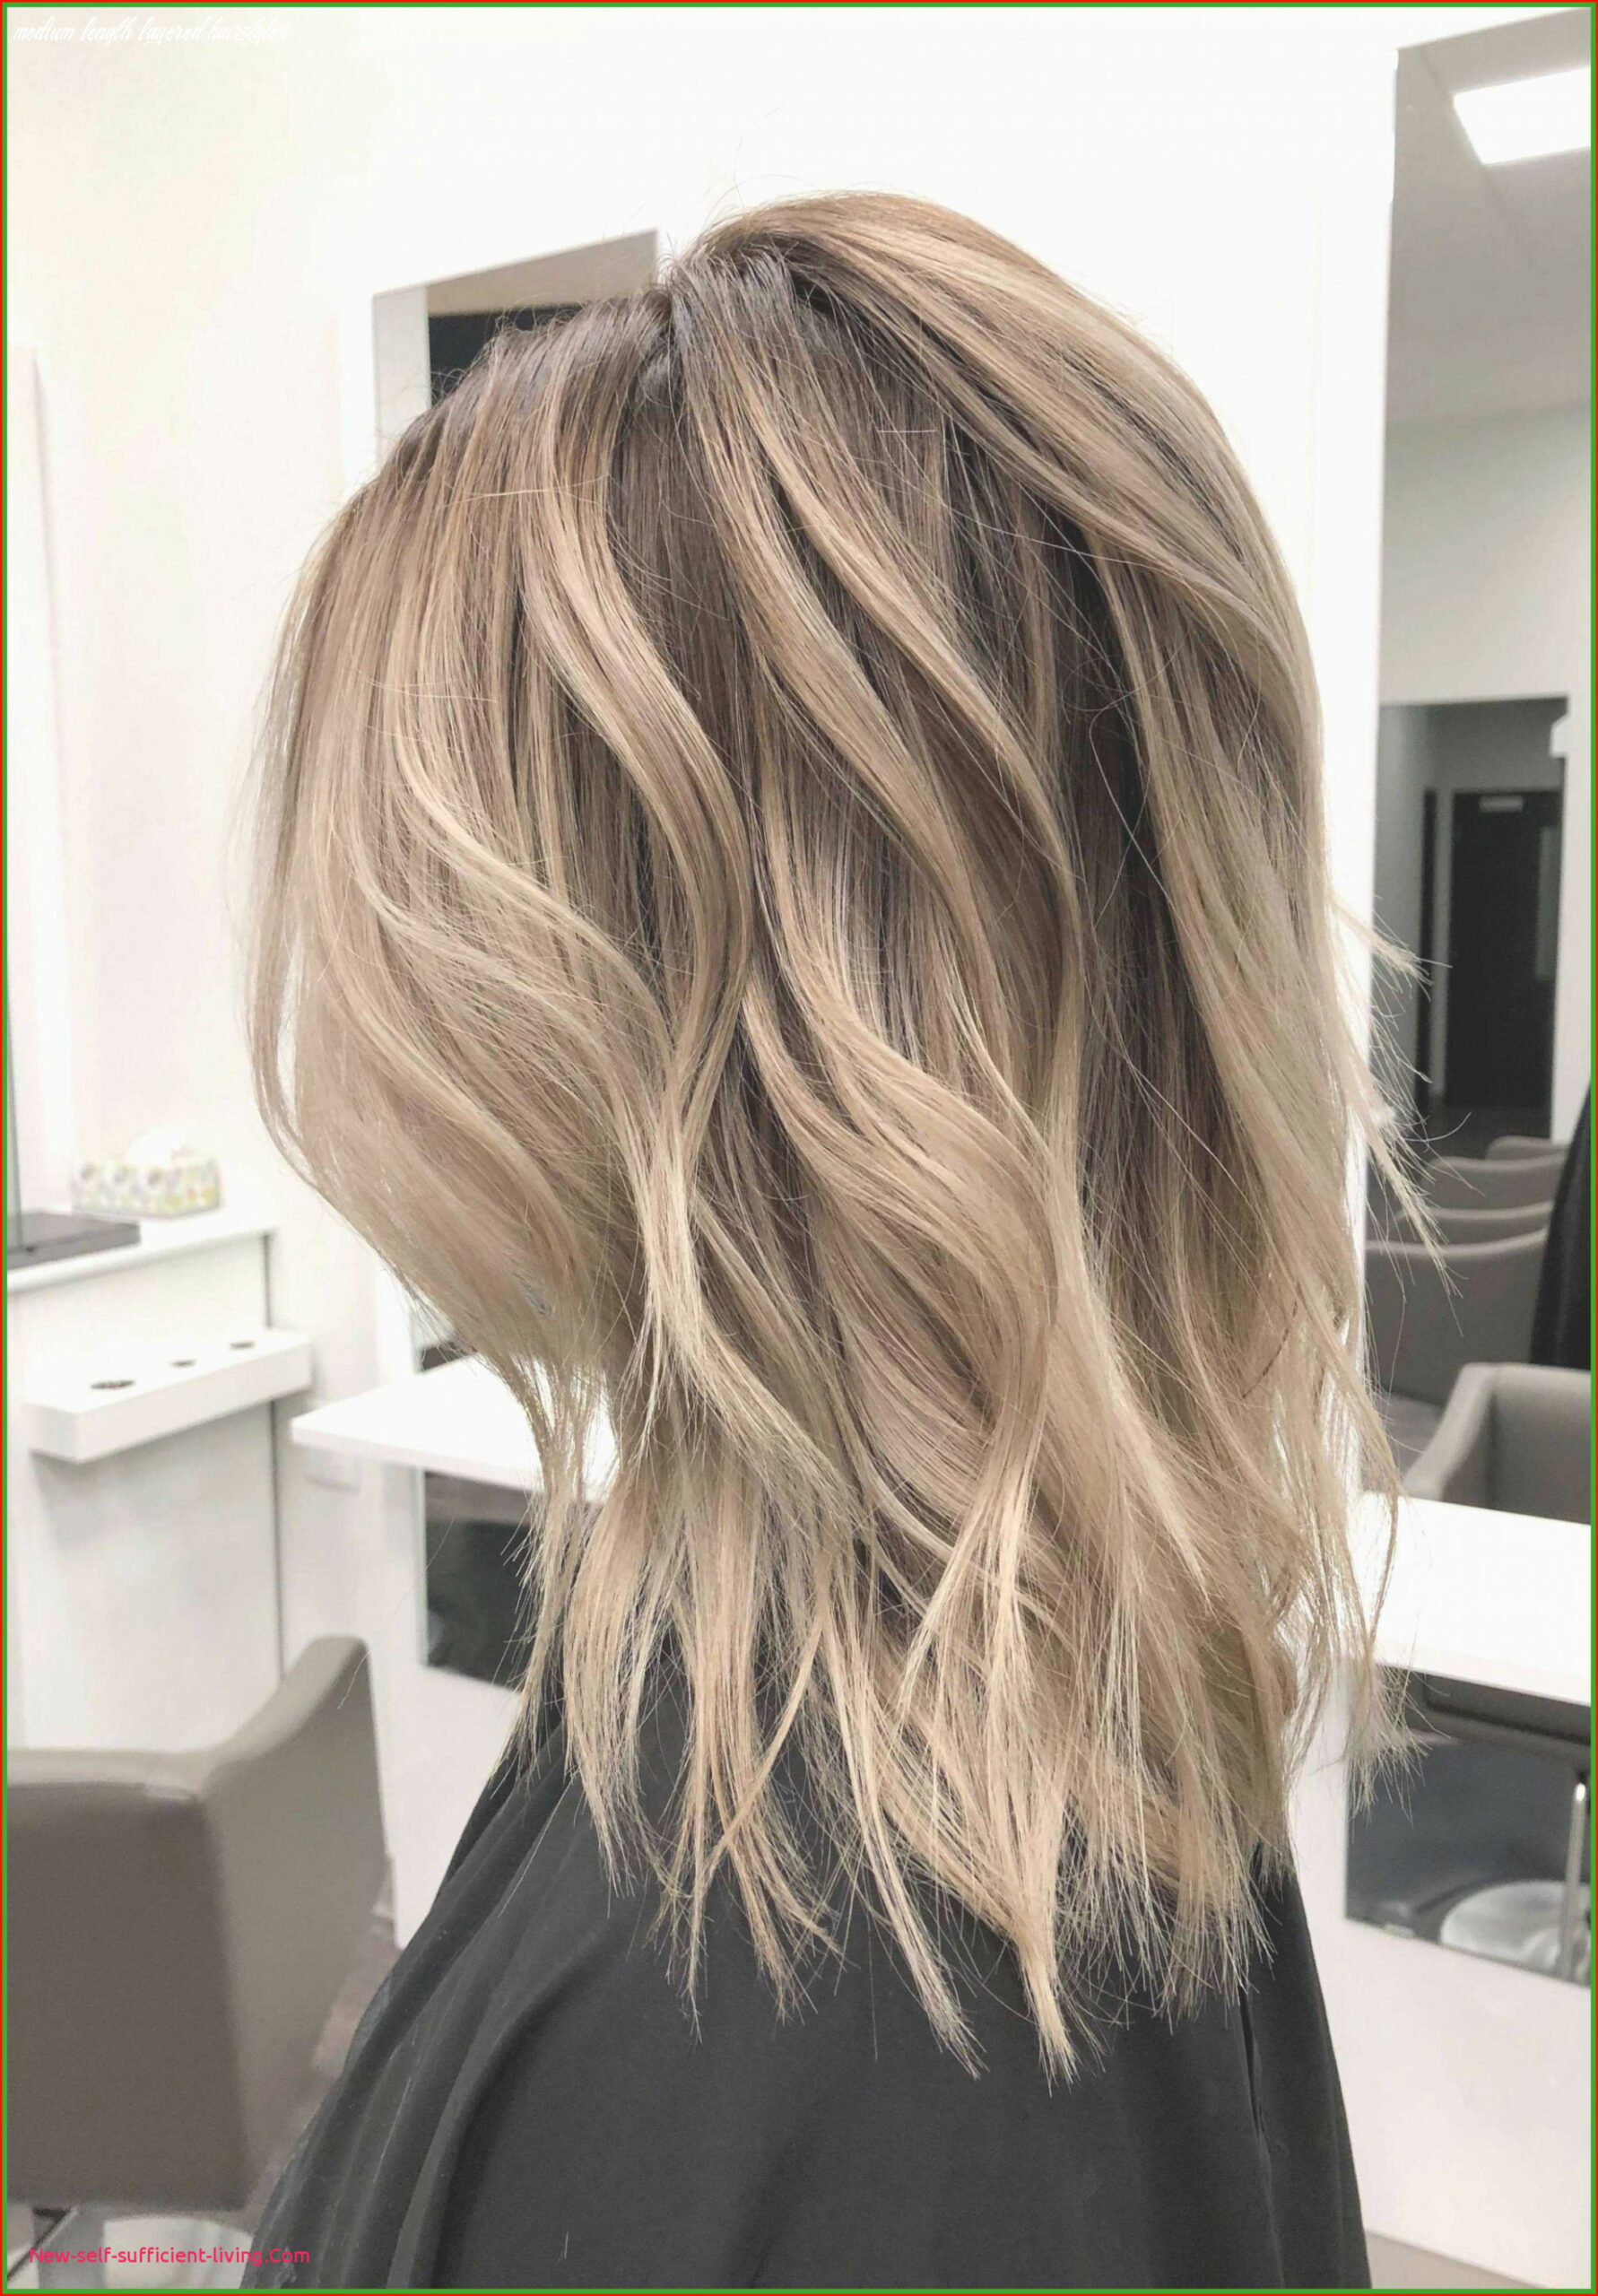 Top Pictures Of Medium Haircuts Photos Of Haircuts Ideas 8 ...